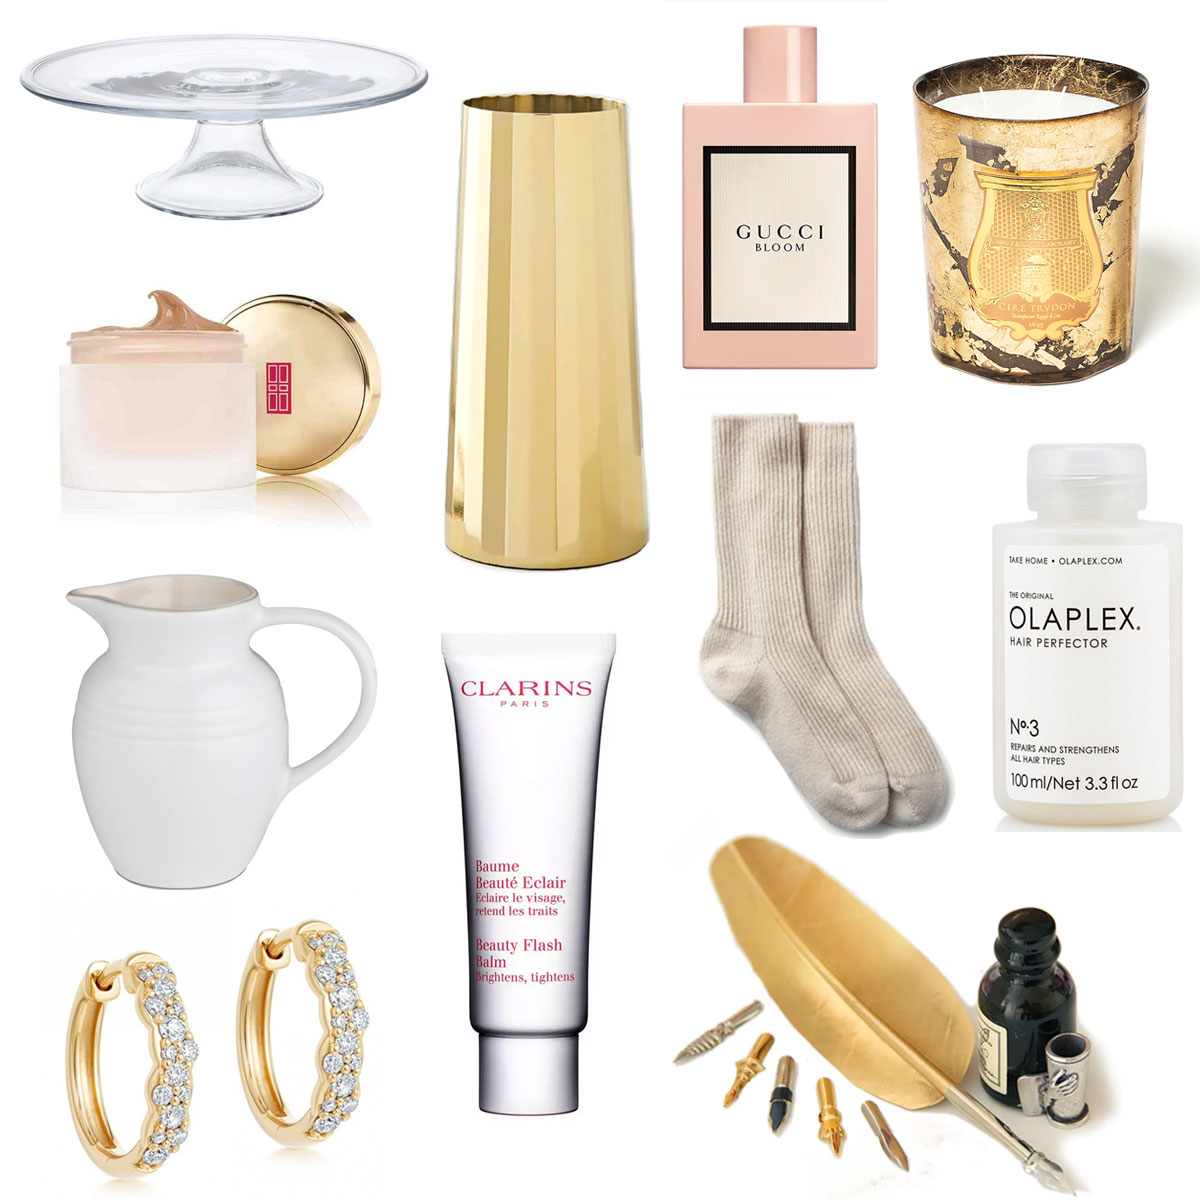 Christmas Gift Guide featuring Dartington Crystal, West Elm, Gucci, Cire Trudon, Elizabeth Arden, The White Company, Olaplex, Le Creuset, Clarins, Astley Clarke and Pen Heaven - luxury lifestyle blog